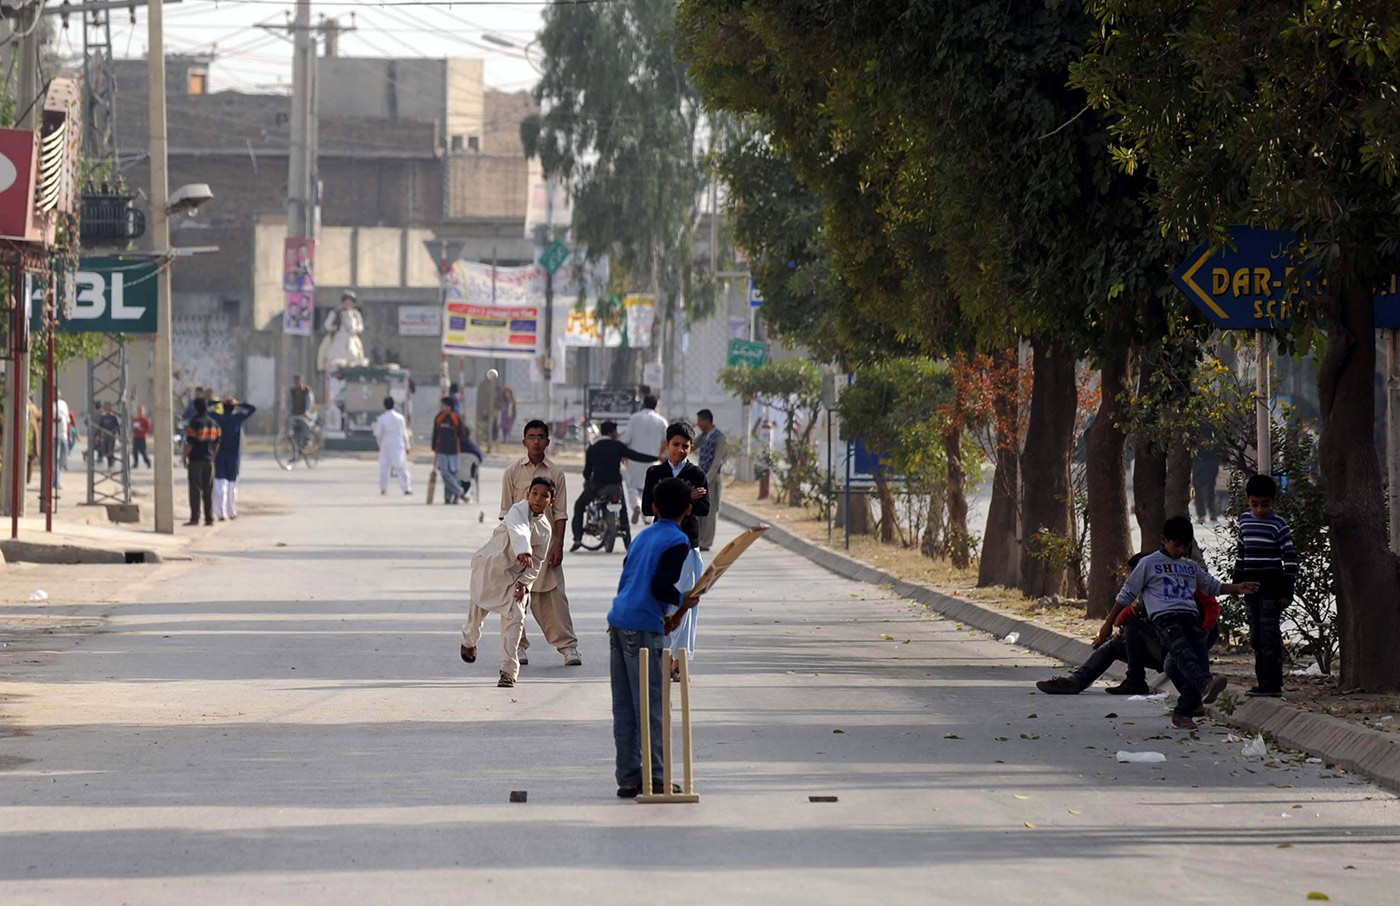 Kids play cricket in a street